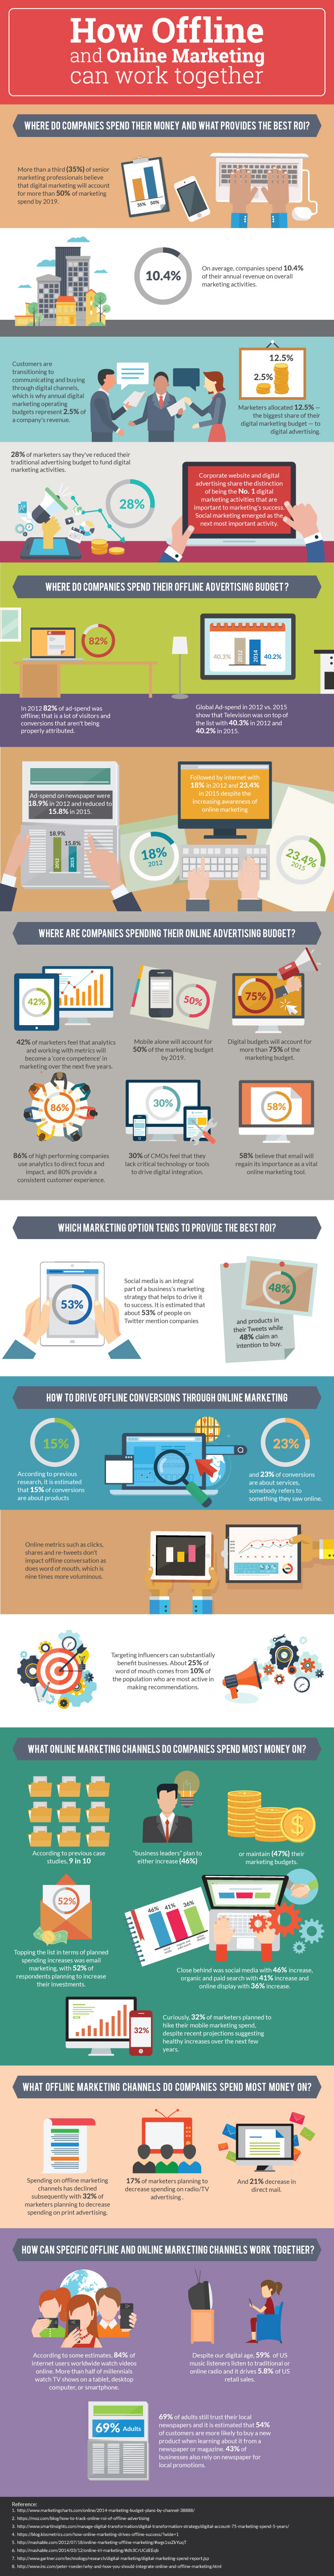 offline-and-online-marketing-infographic.jpg